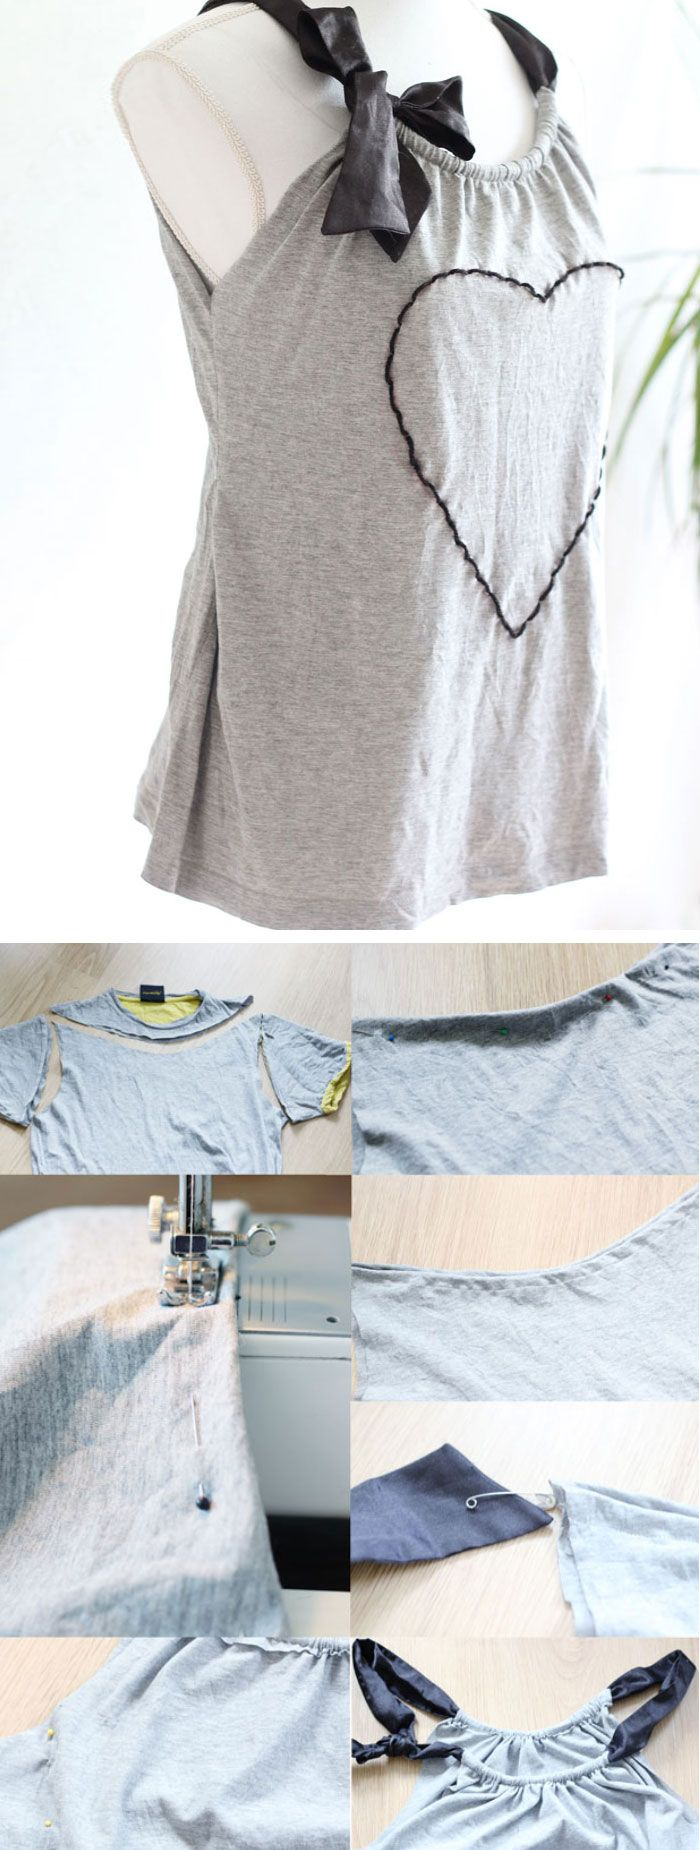 Refashion a Mans Tshirt into a Cute Summer Top | Click Pic for 25 Simple Life Hacks Every Girl Should Know | DIY Clothing Refashion Ideas